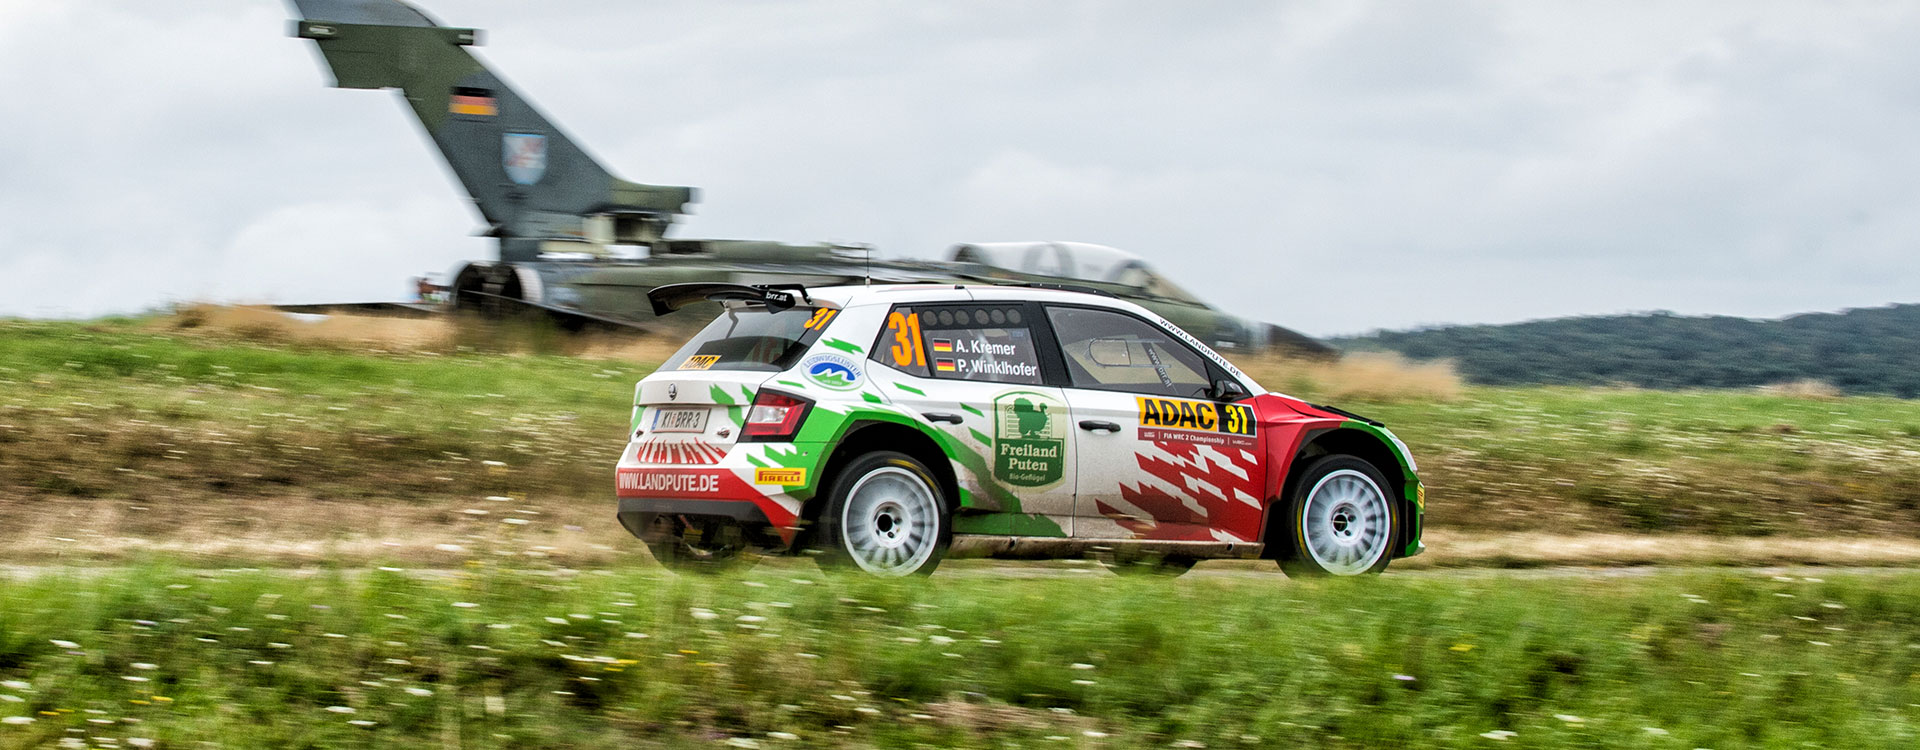 More Customer Teams' success as ŠKODA scores stunning Rallye Deutschland result